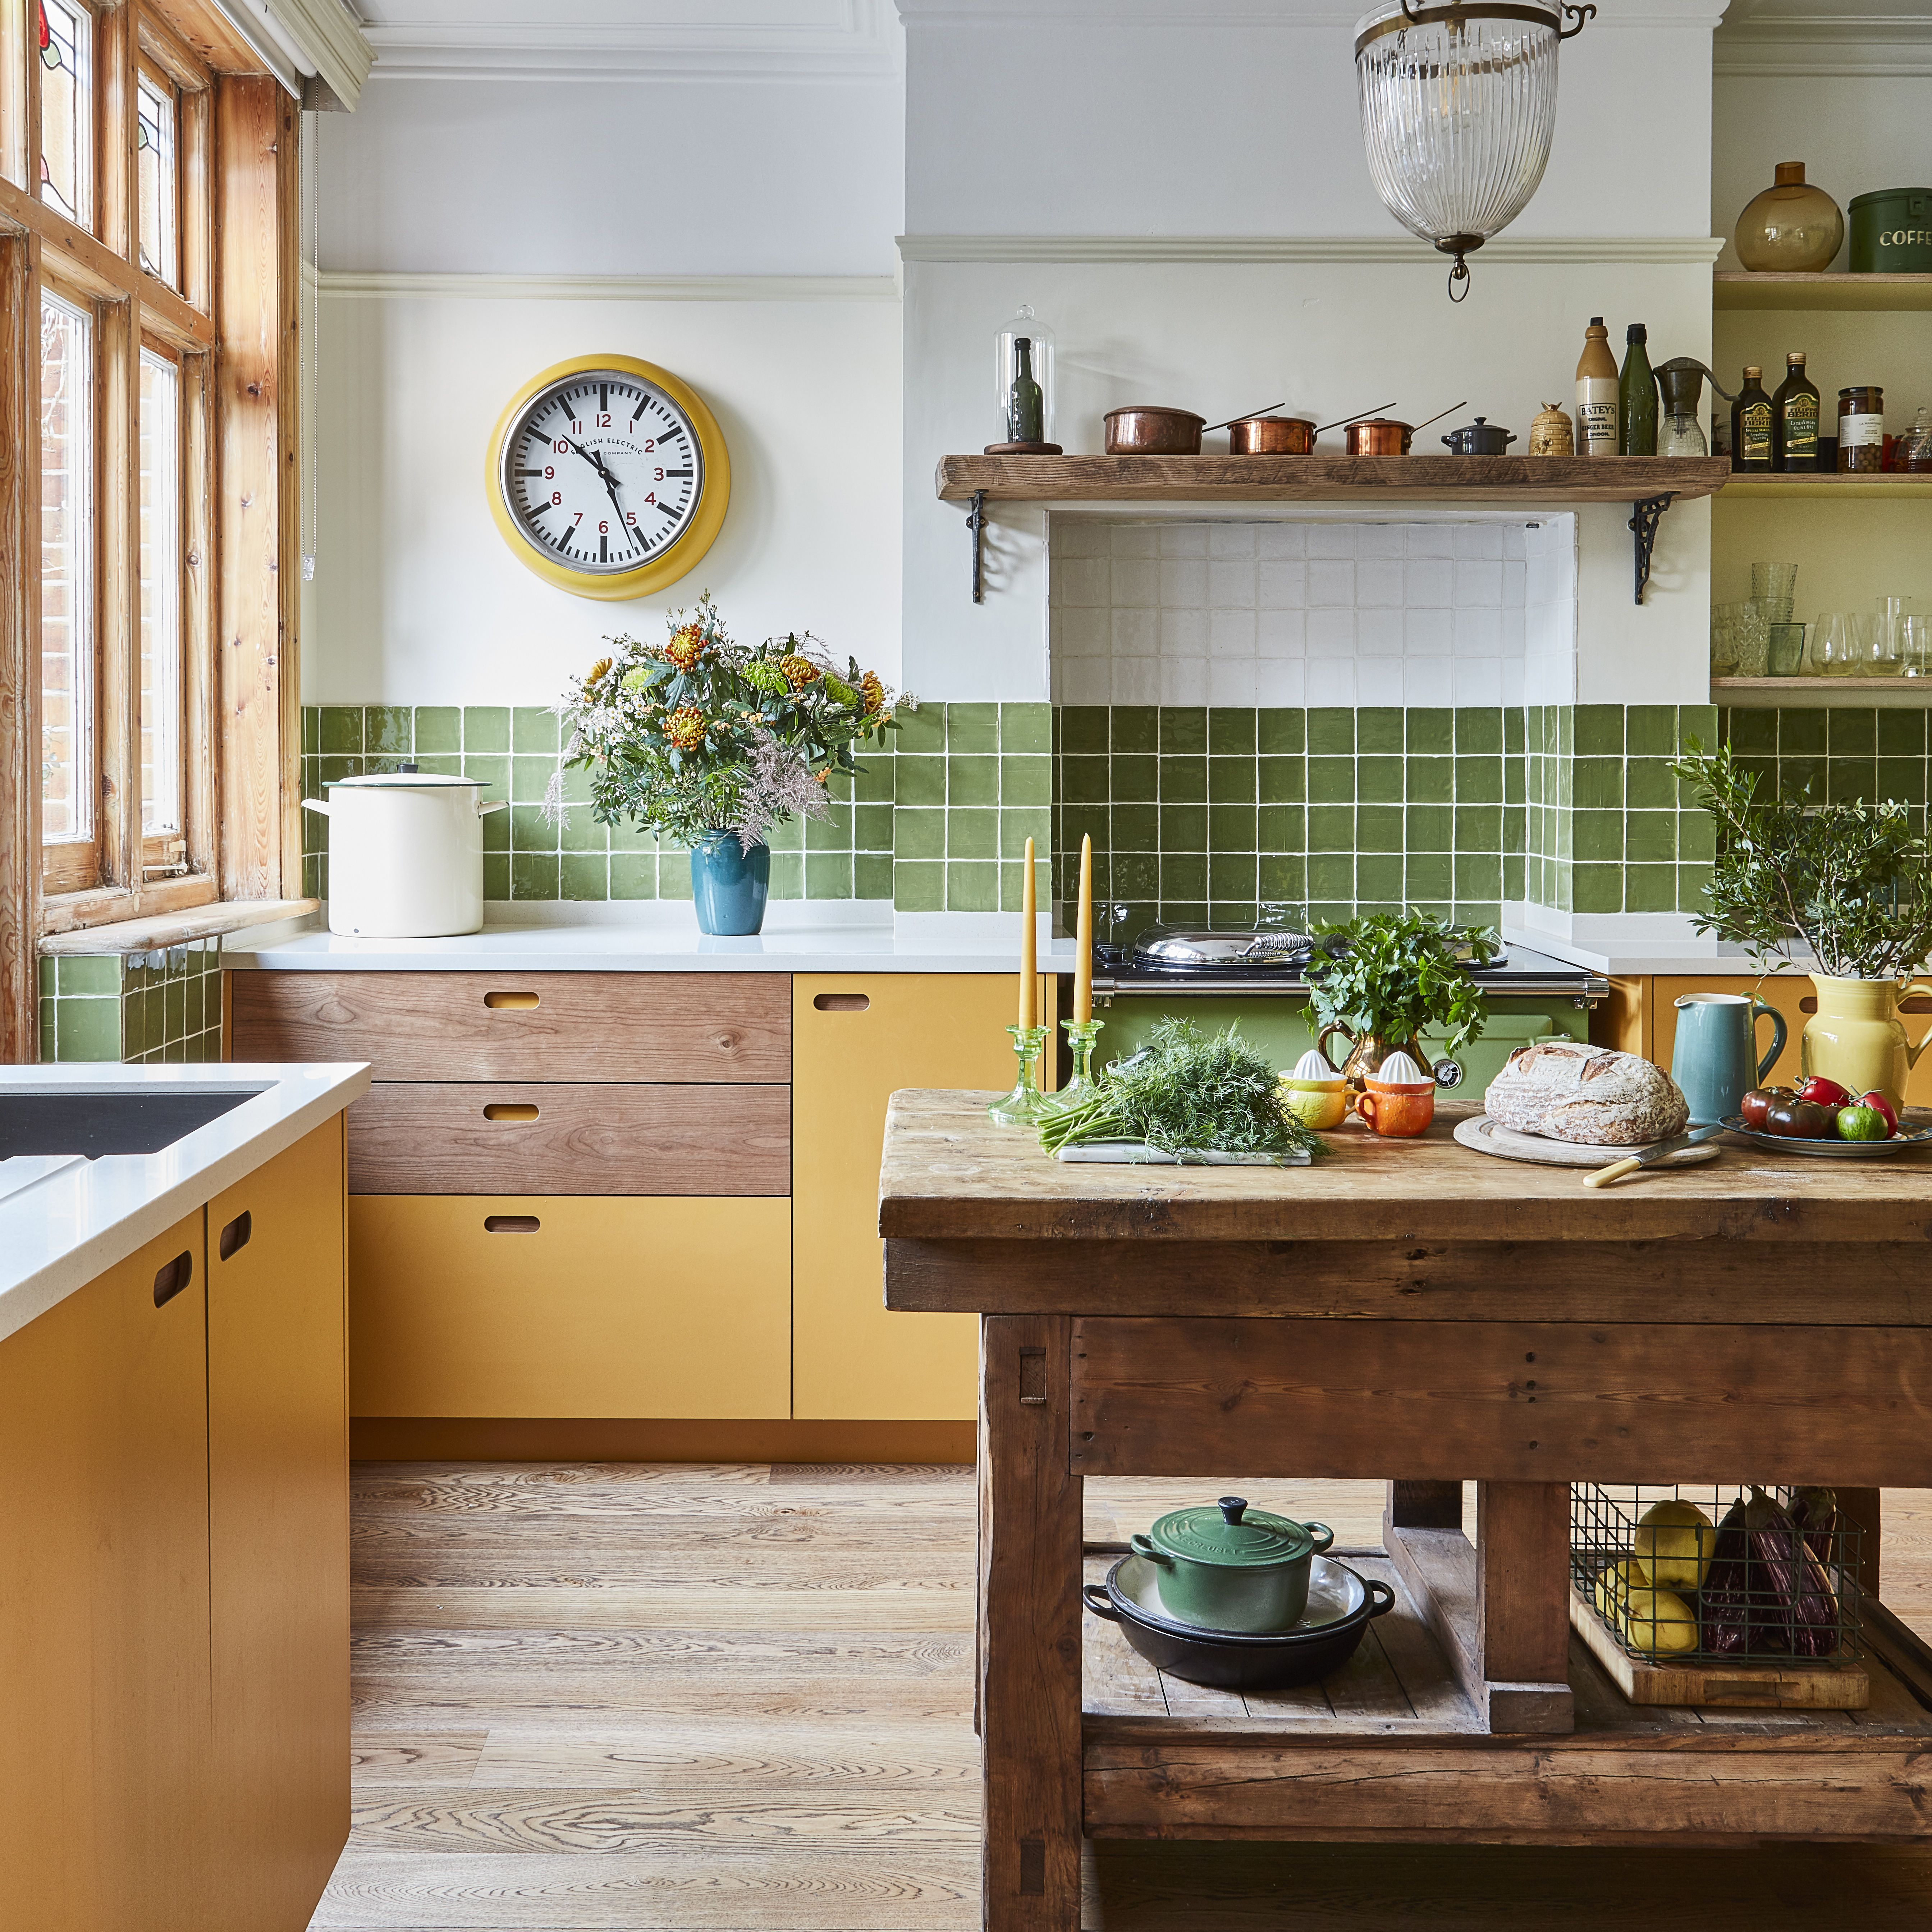 Mustard Yellow And Olive Green Kitchen Designed By Pluck Contemporary Cabinets Interior Inspirations